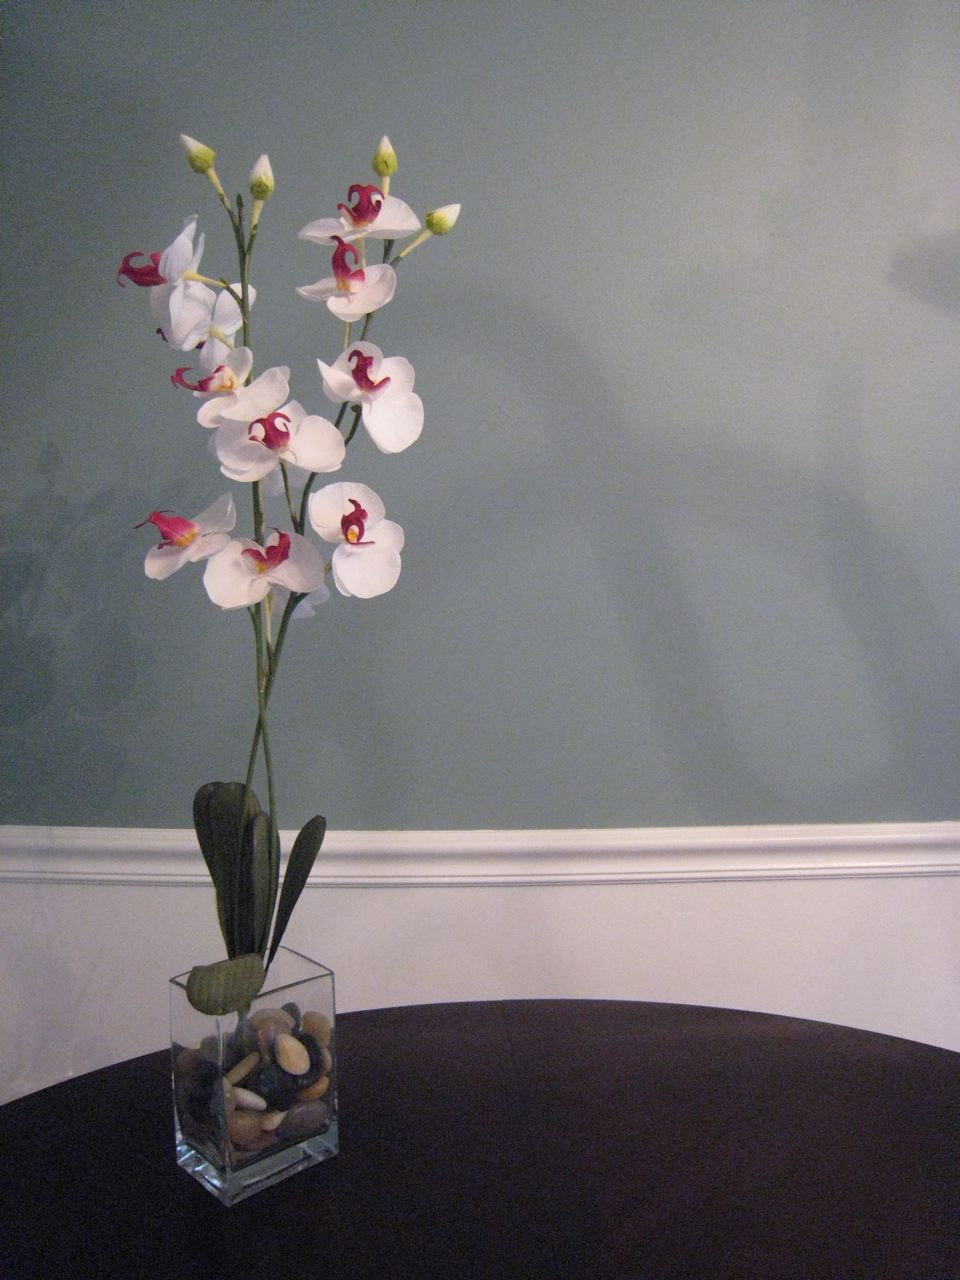 Benjamin moore paint review is it worth the price - Average price to paint a bedroom ...